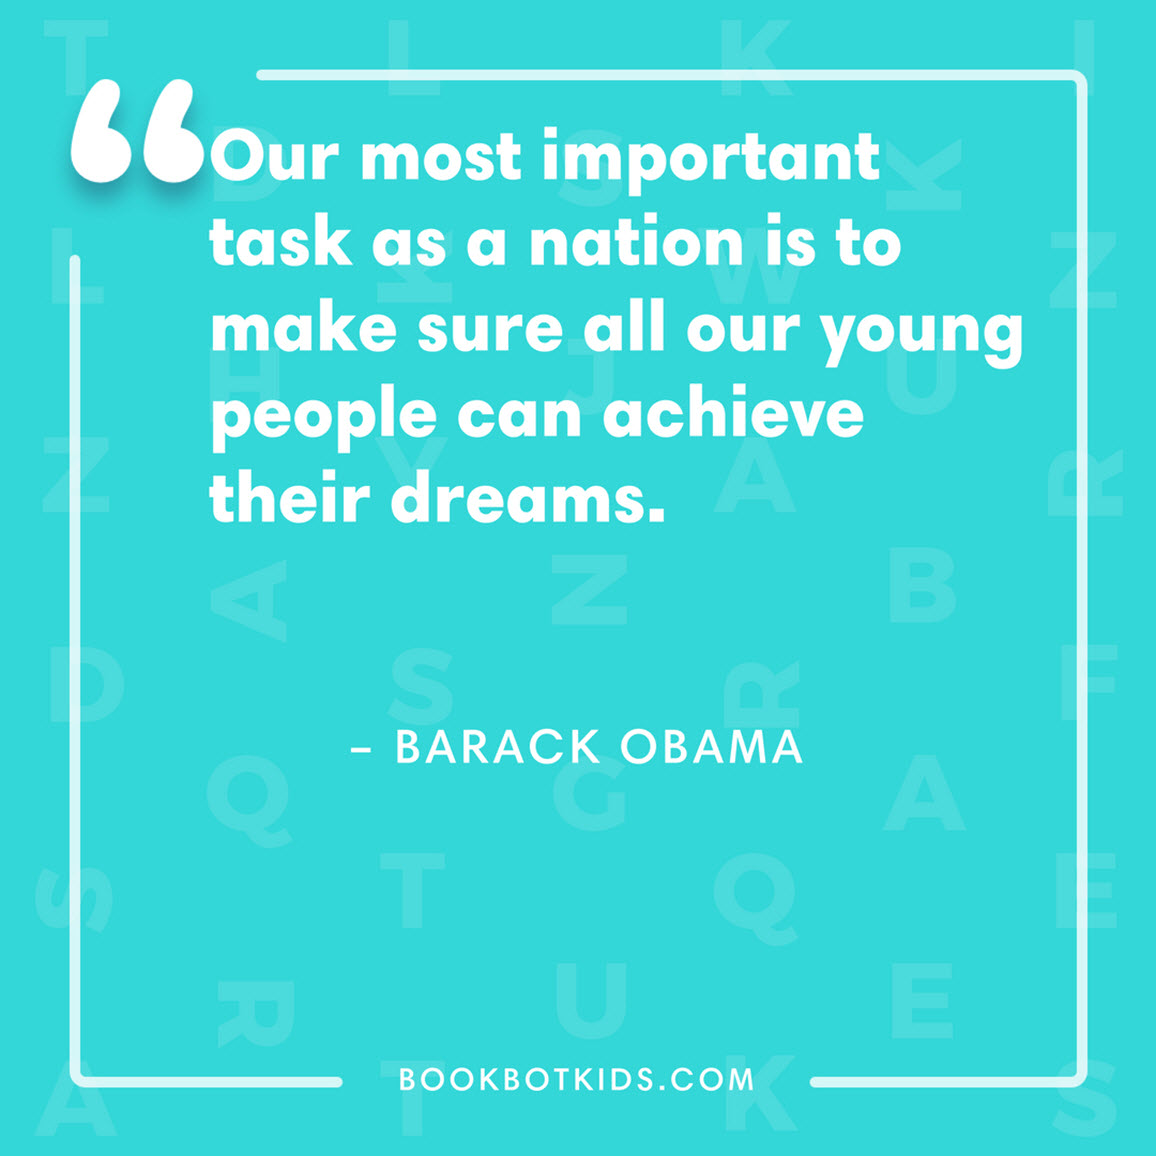 Our most important task as a nation is to make sure all our young people can achieve their dreams. – Barack Obama